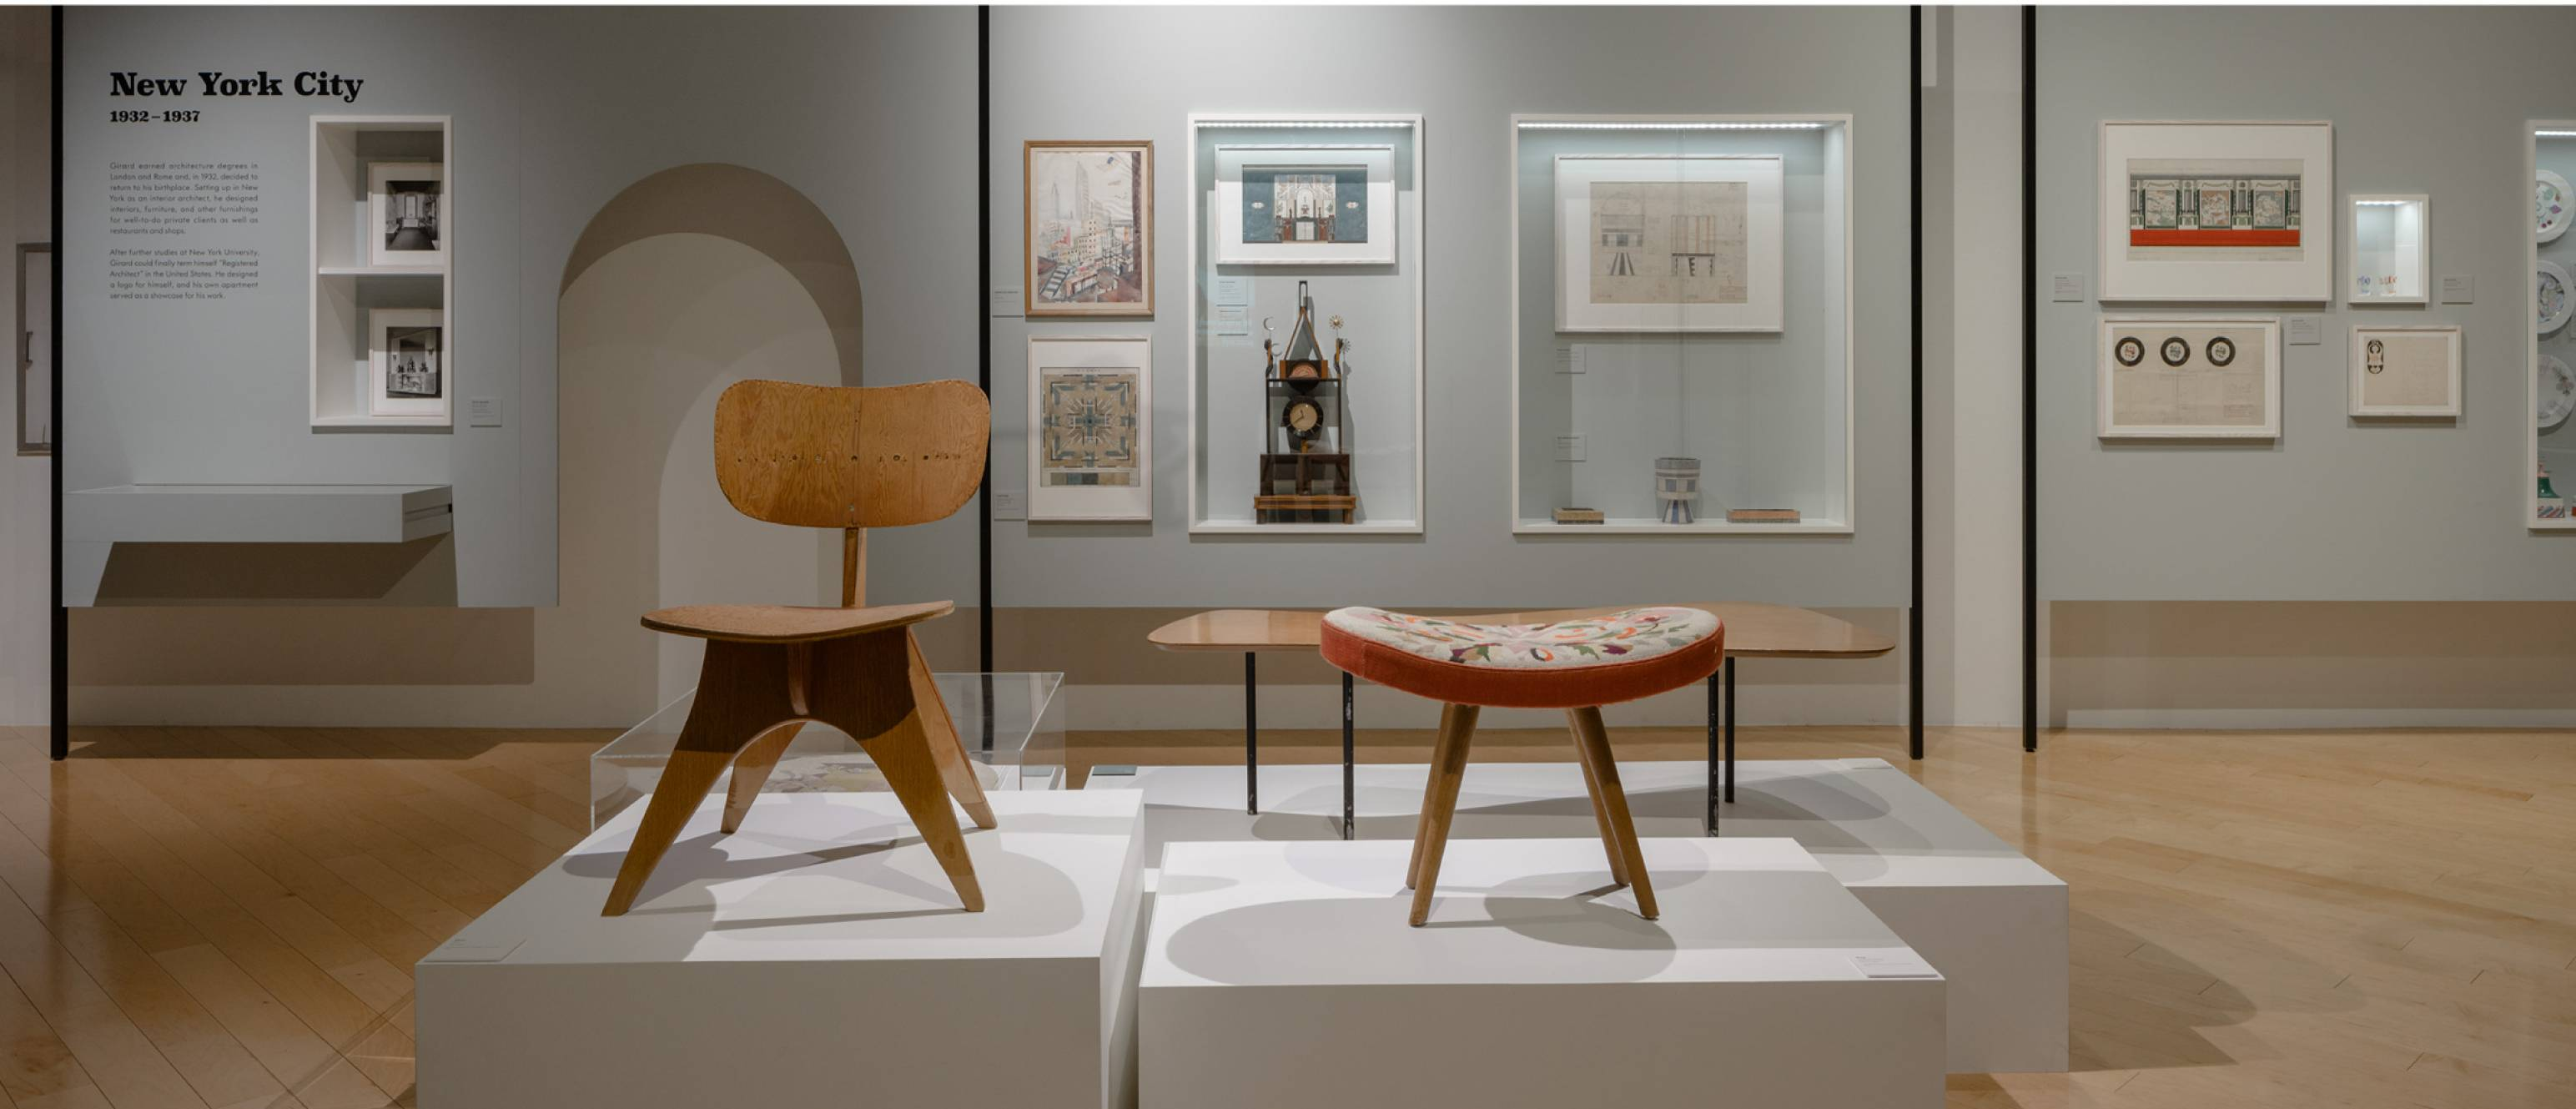 Alexander Girard exhibition, Prototype chairs and artworks in the back